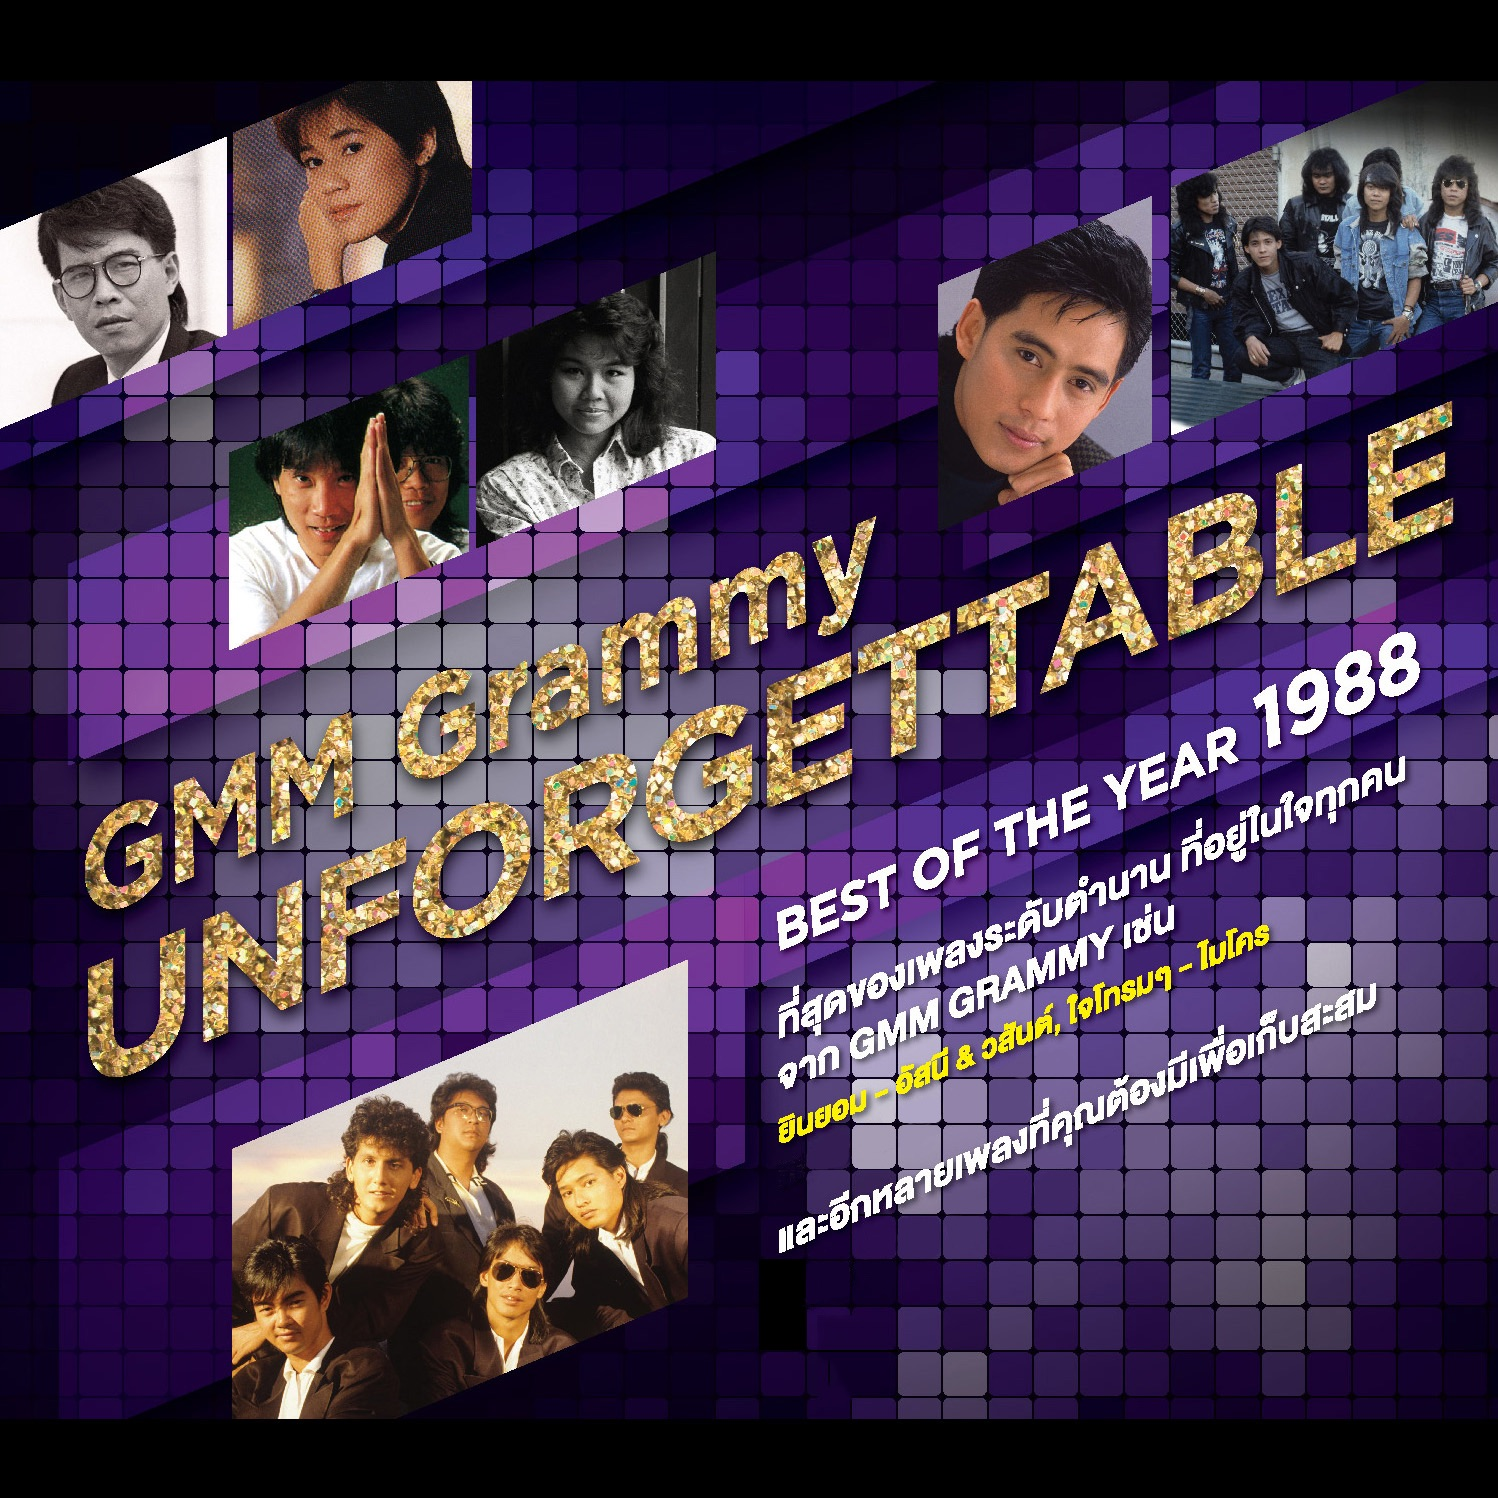 Gmm grammy unforgettable best of the year 1988 di various for Best songs of 1988